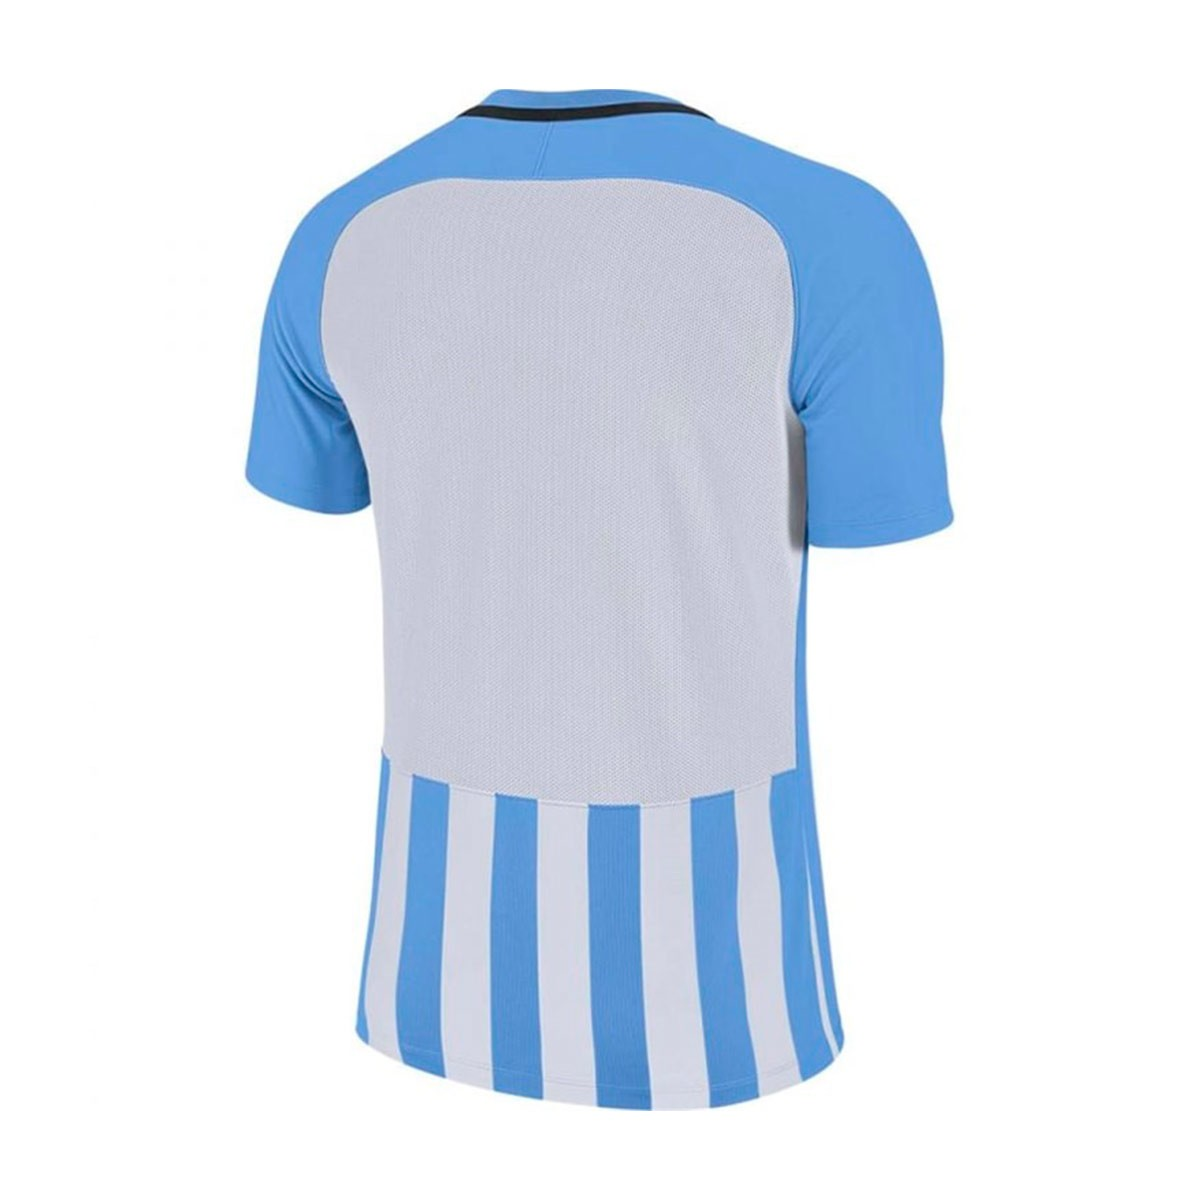 9a2a22b8436 Jersey Nike Striped Division III m/c University blue-White - Tienda de  fútbol Fútbol Emotion